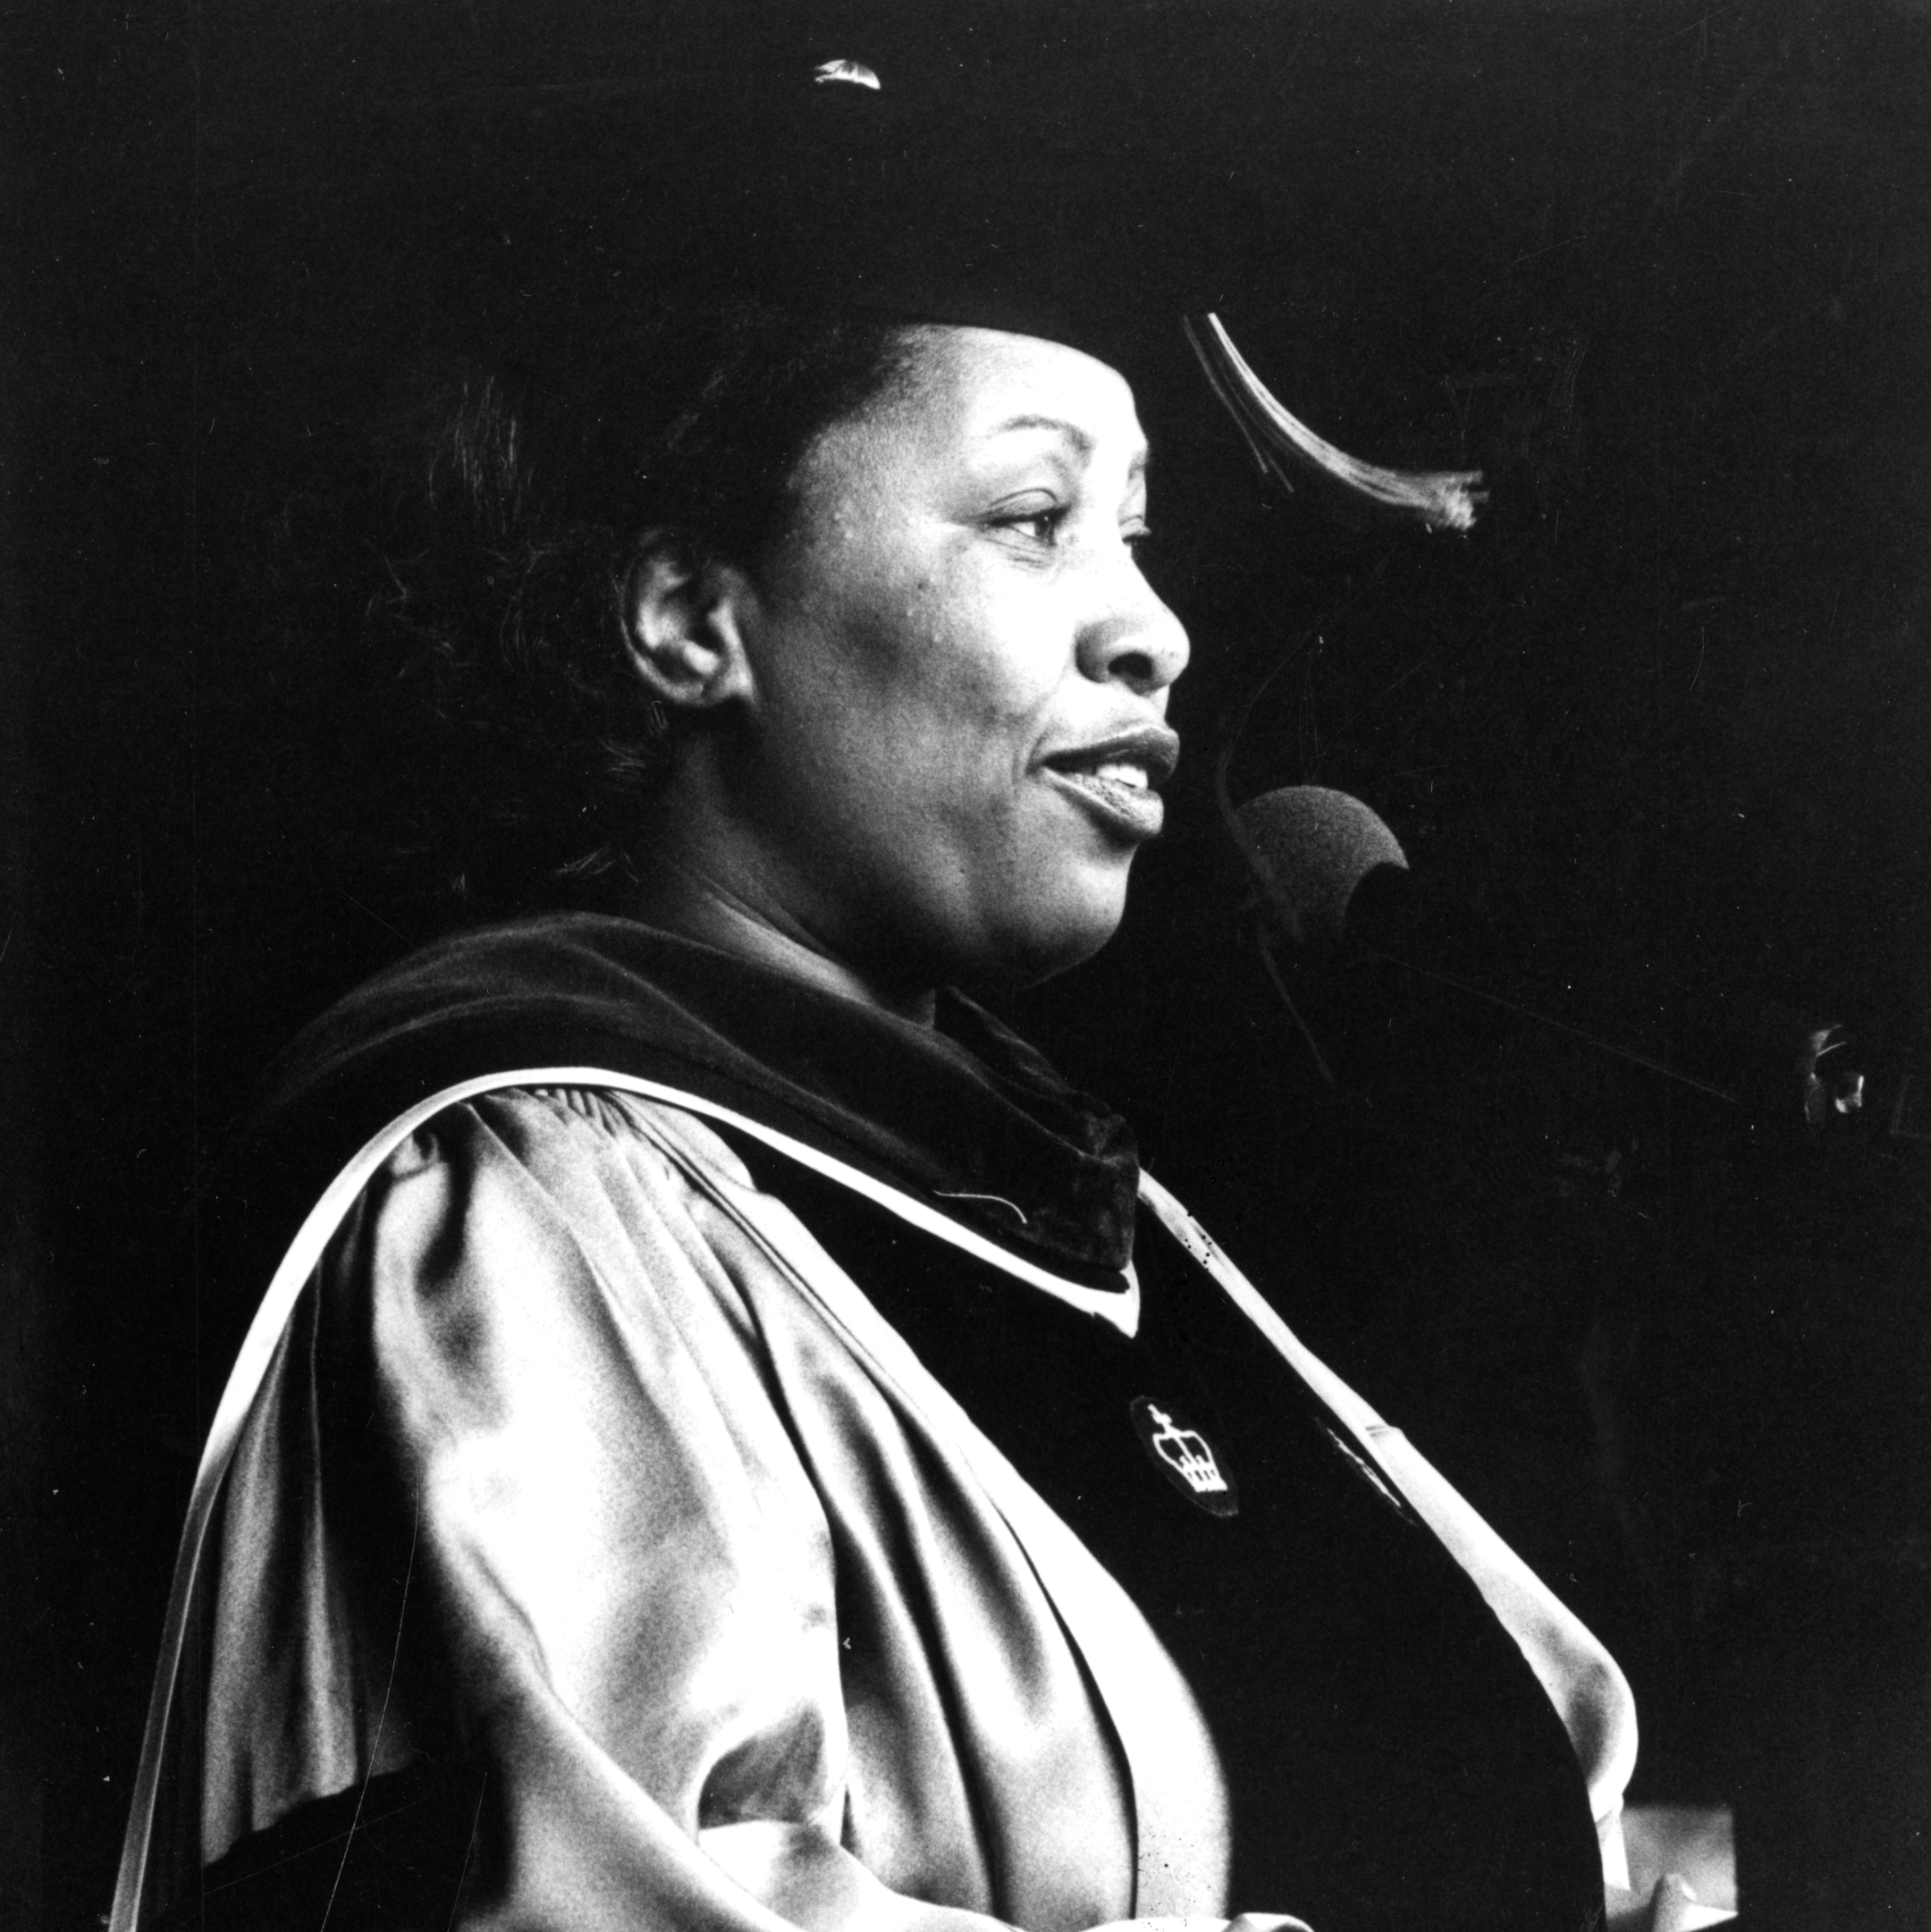 Toni Morrison speaking at her commencement address to the Barnard Class of 1979.